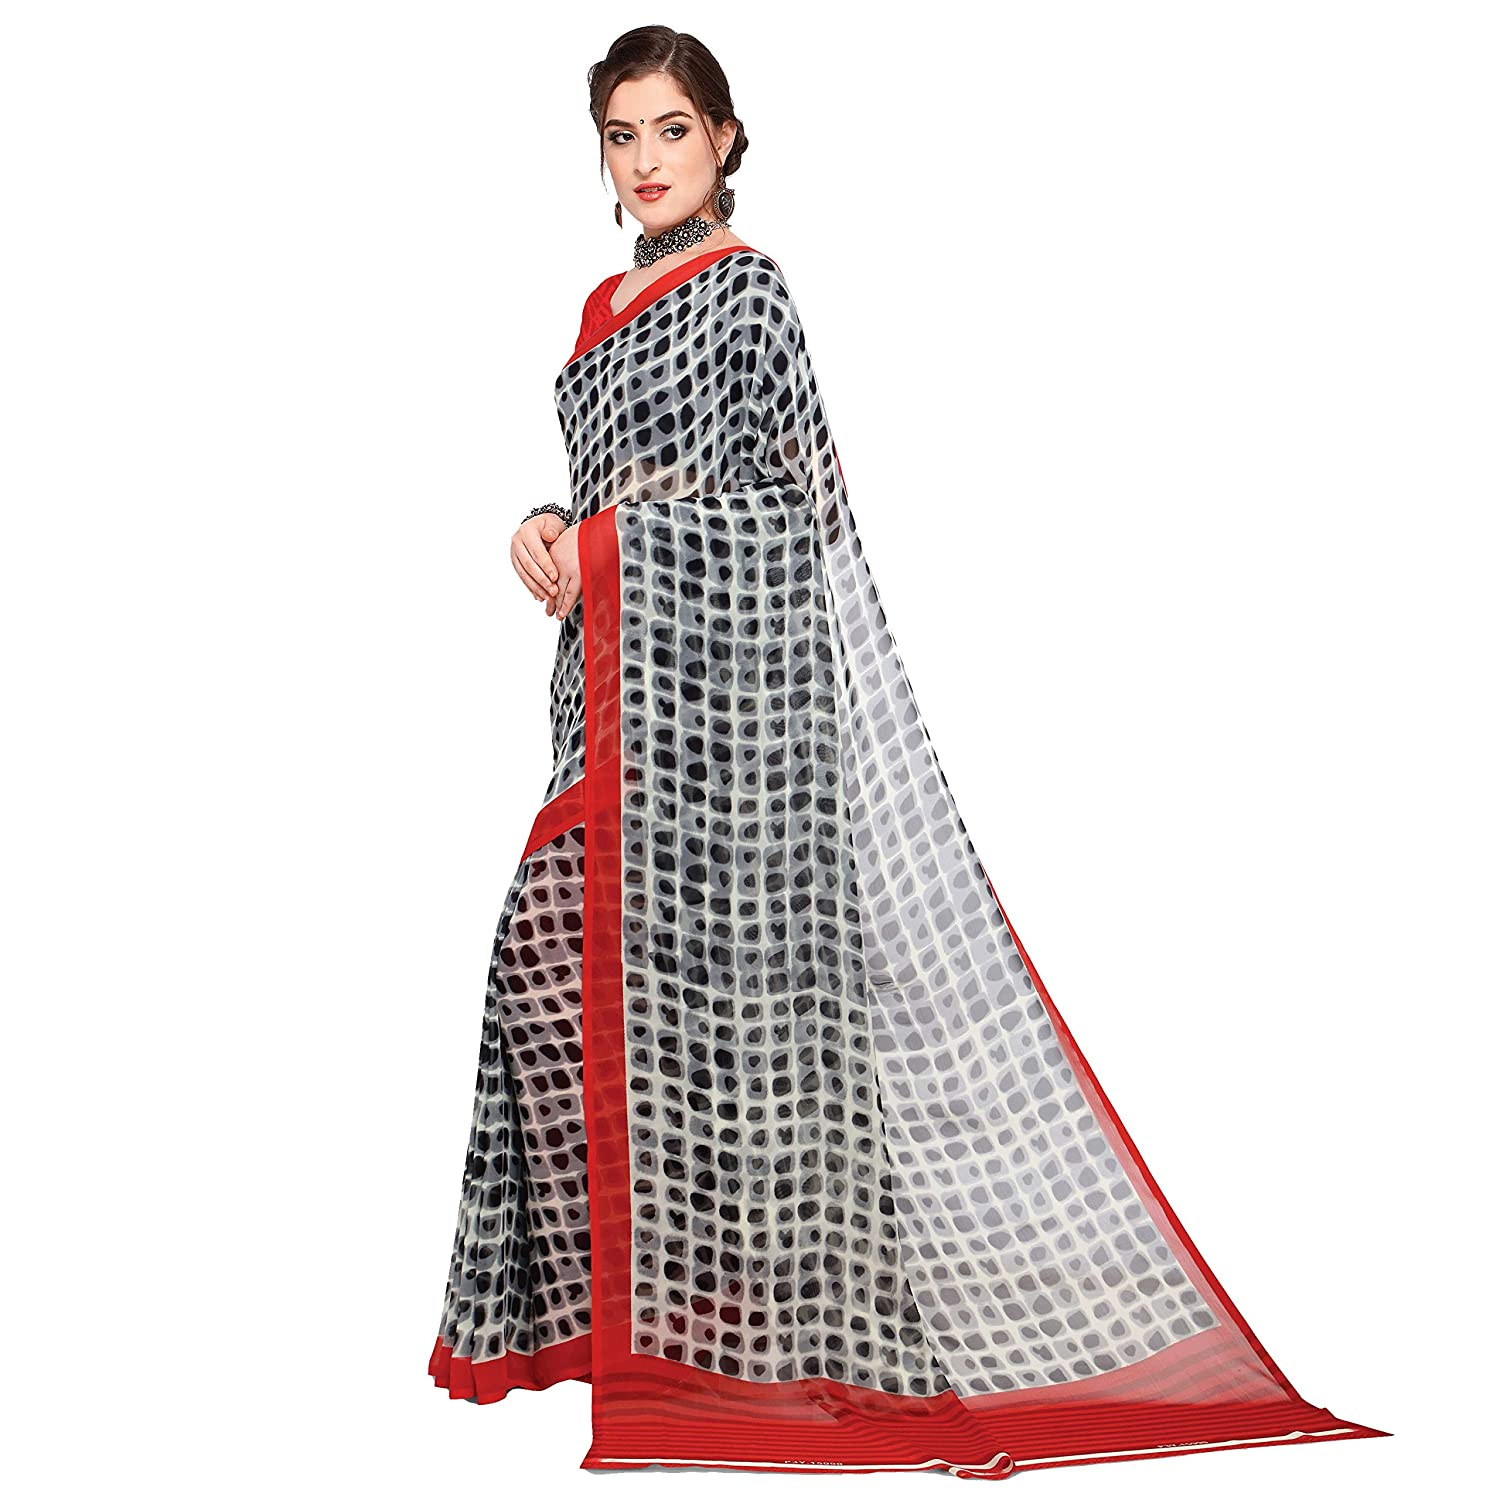 c5a0bb5114 Kashvi Sarees Black Color Faux Georgette Printed Saree With Blouse Piece  (1441): Amazon.in: Clothing & Accessories